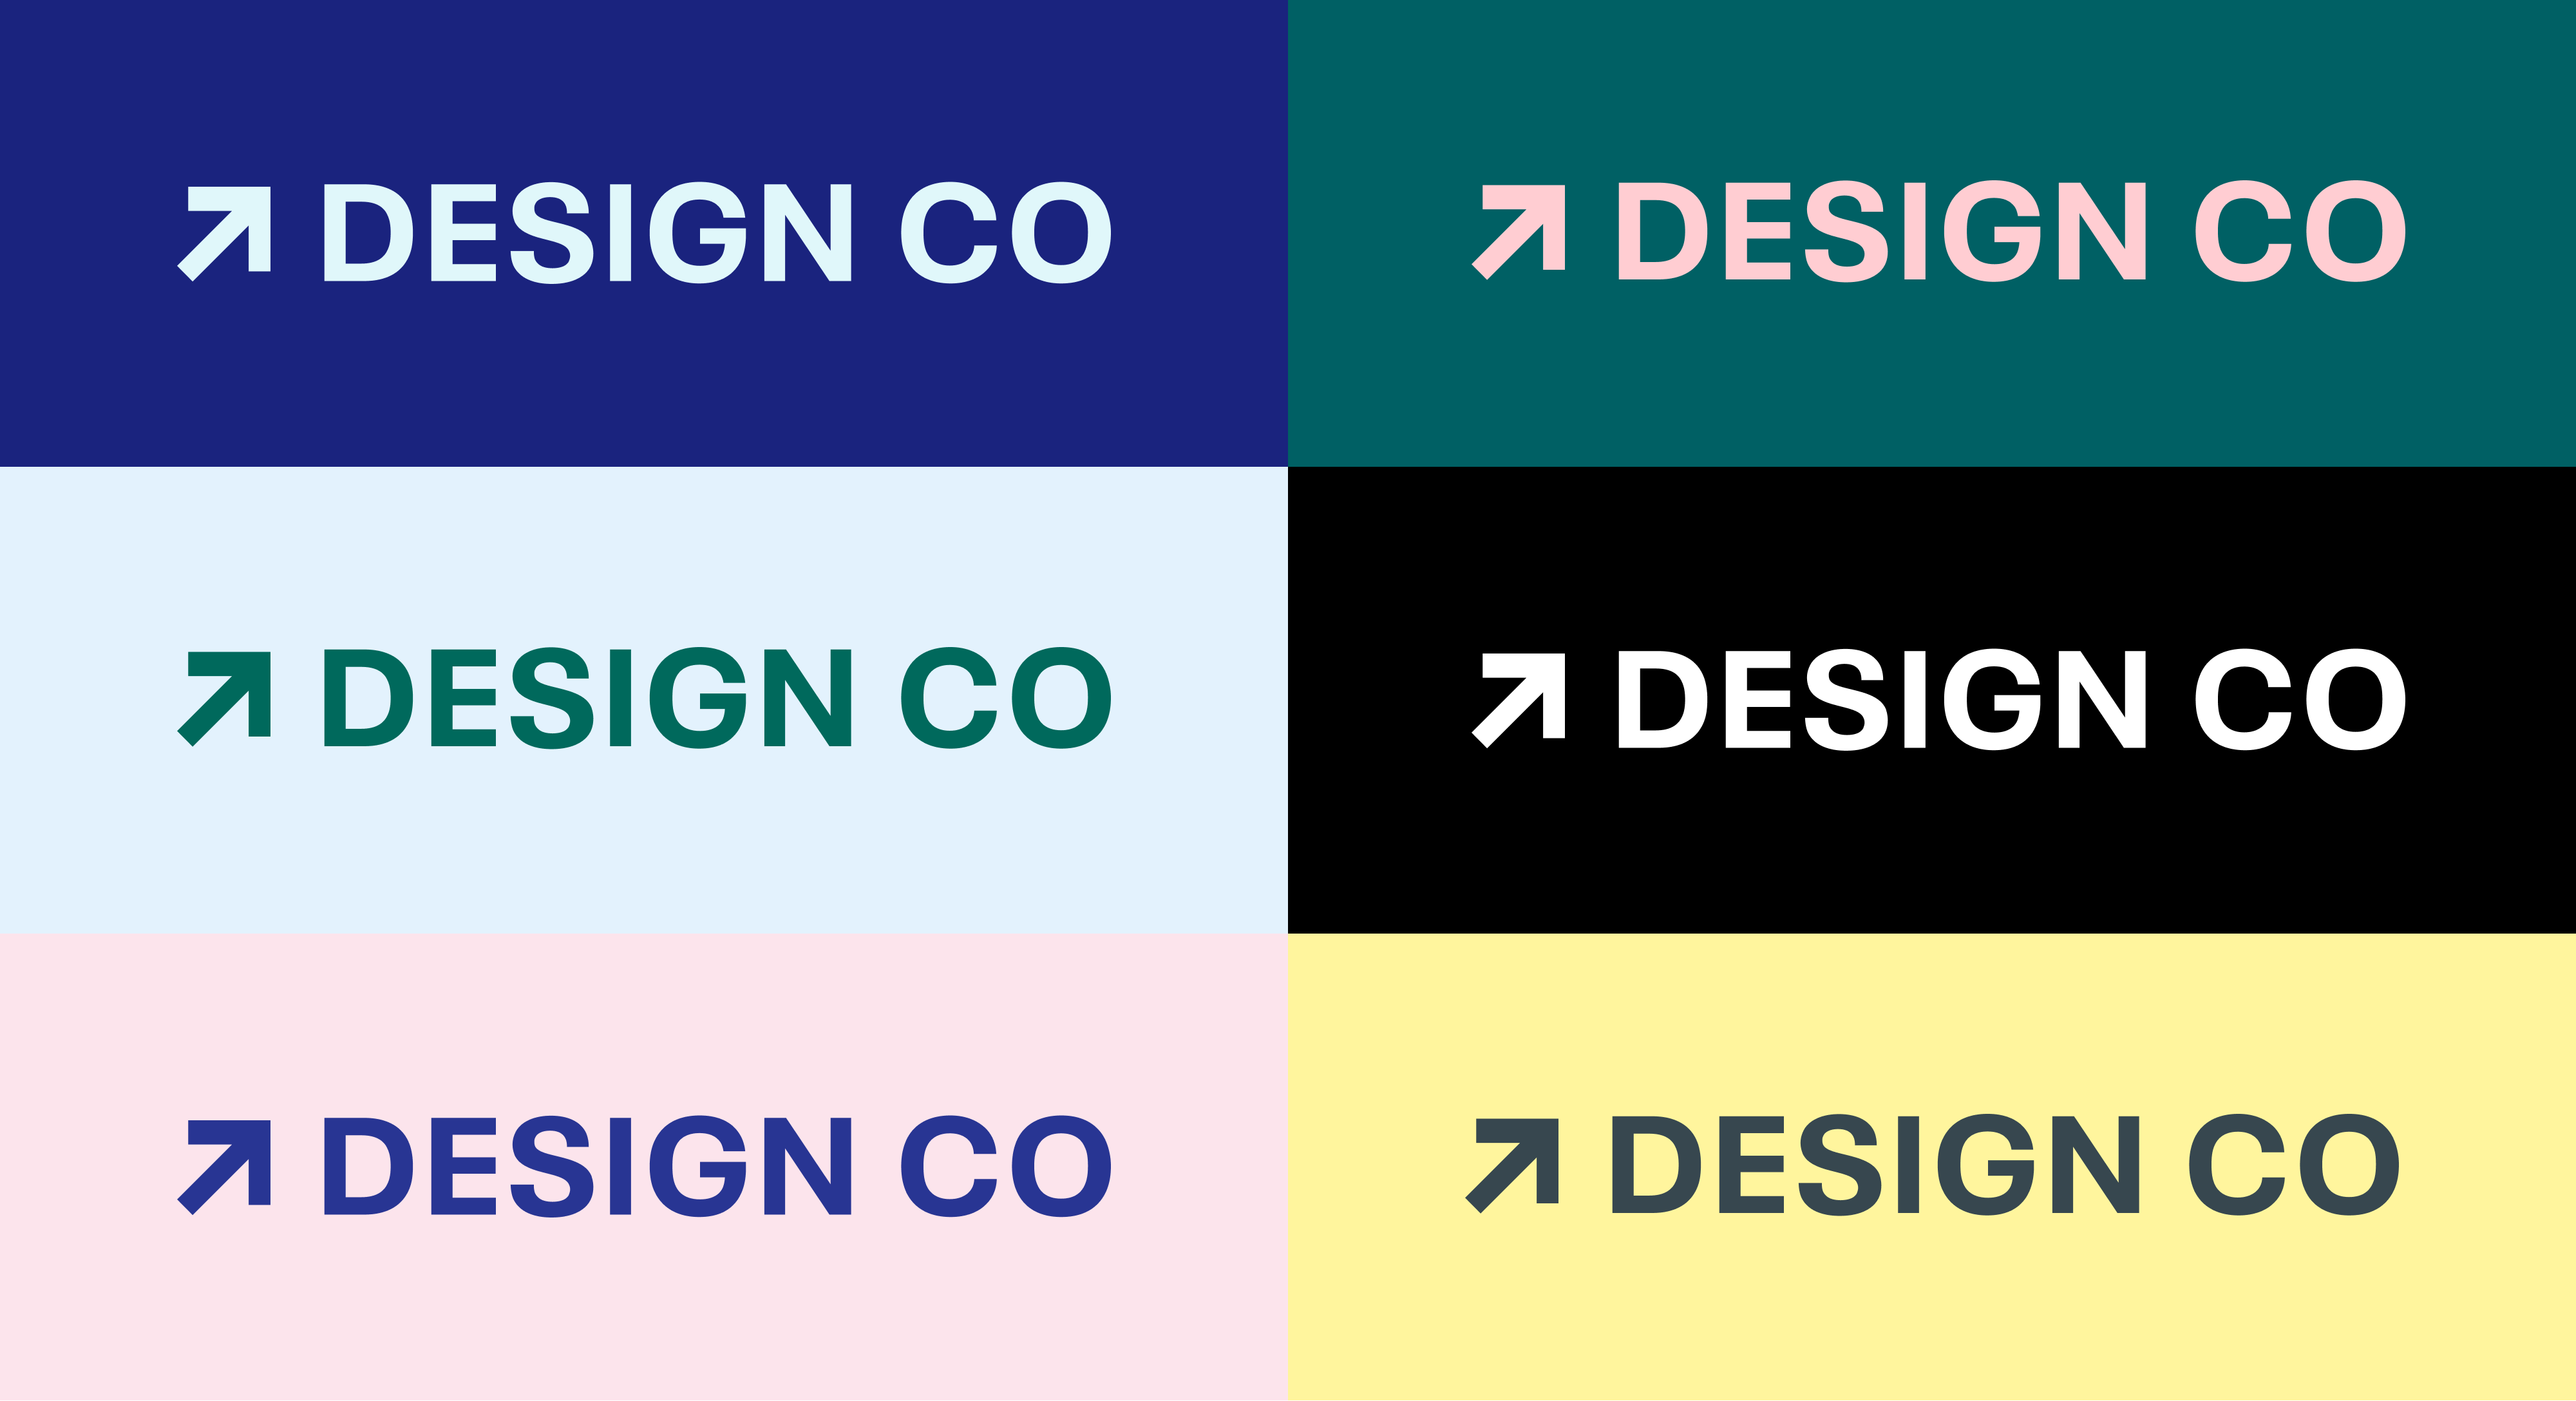 Design Co color combo examples